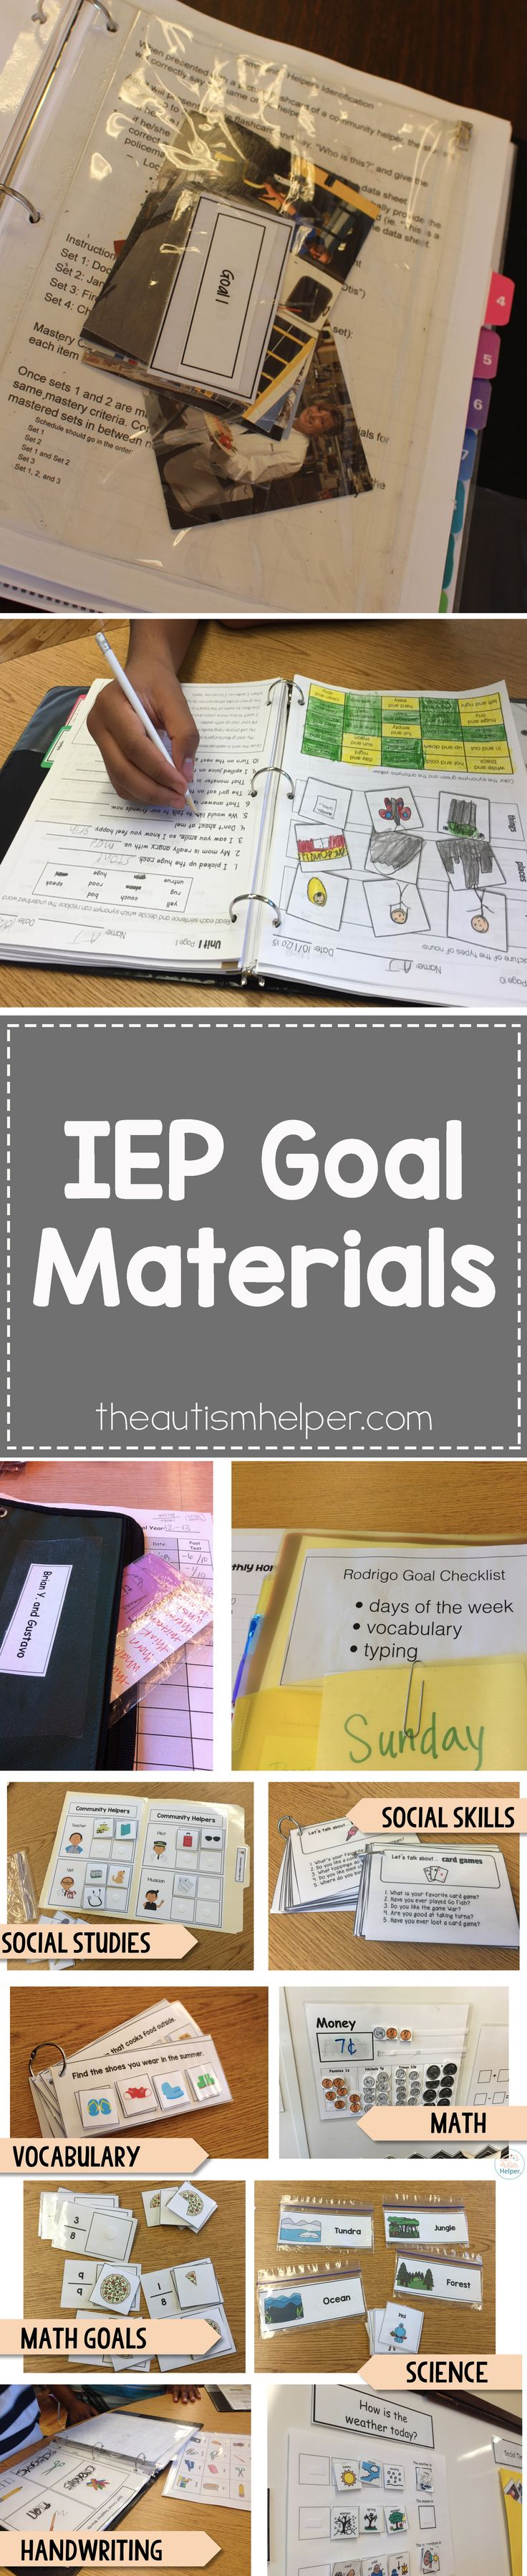 Your beautiful list of IEP goals likely requires a decent amount of materials to target those goals. It can feel like a daunting task now, but once you make materials you will have these resources forever. It will come full circle I promise! From theautismhelper.com